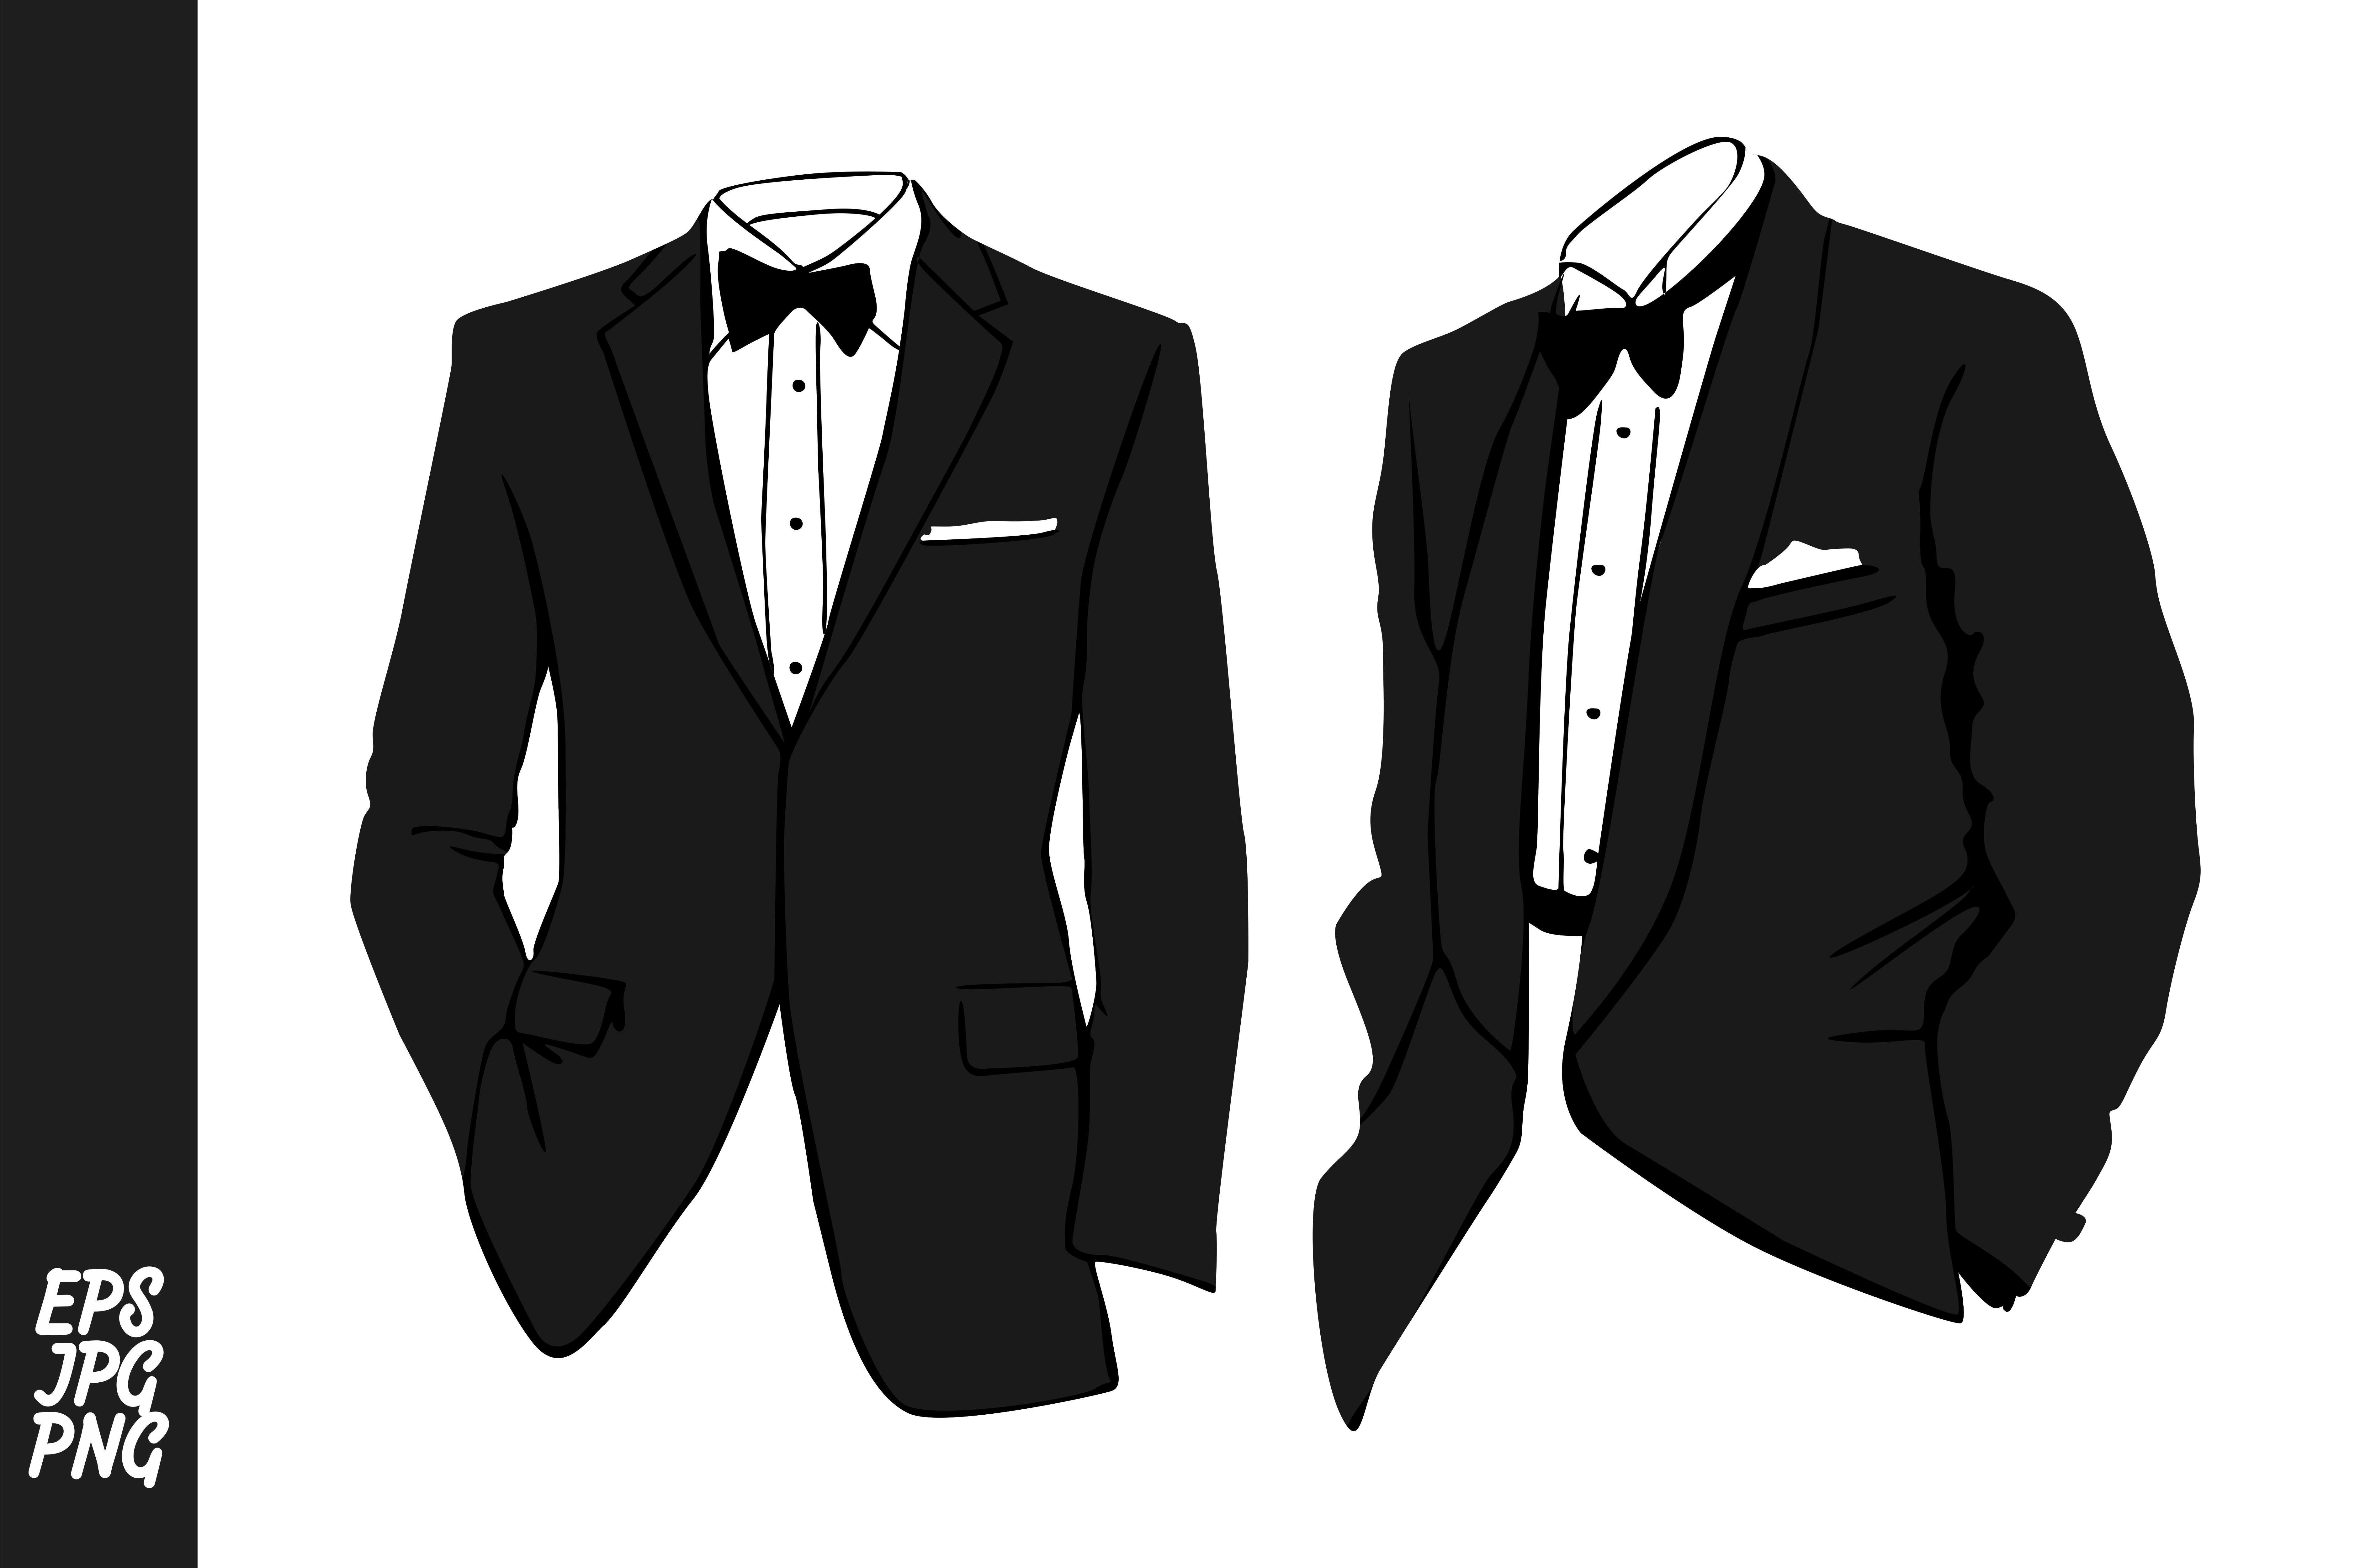 Download Free Tuxedo Suit Graphic By Arief Sapta Adjie Creative Fabrica for Cricut Explore, Silhouette and other cutting machines.